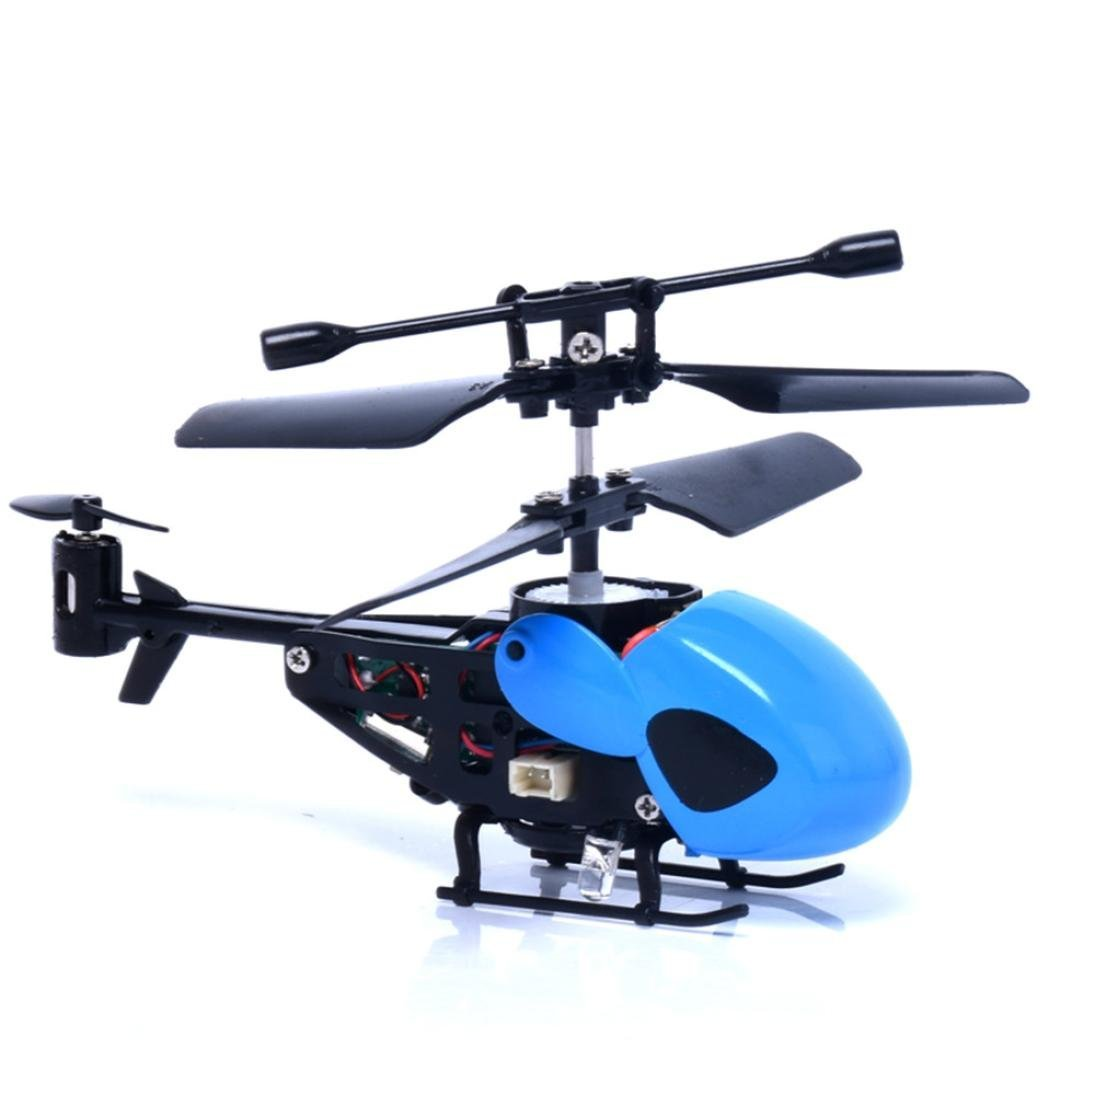 RC Helicopter, Lookatool RC 2CH Mini rc helicopter Radio Remote Control Aircraft Micro 2 Channel, Blue